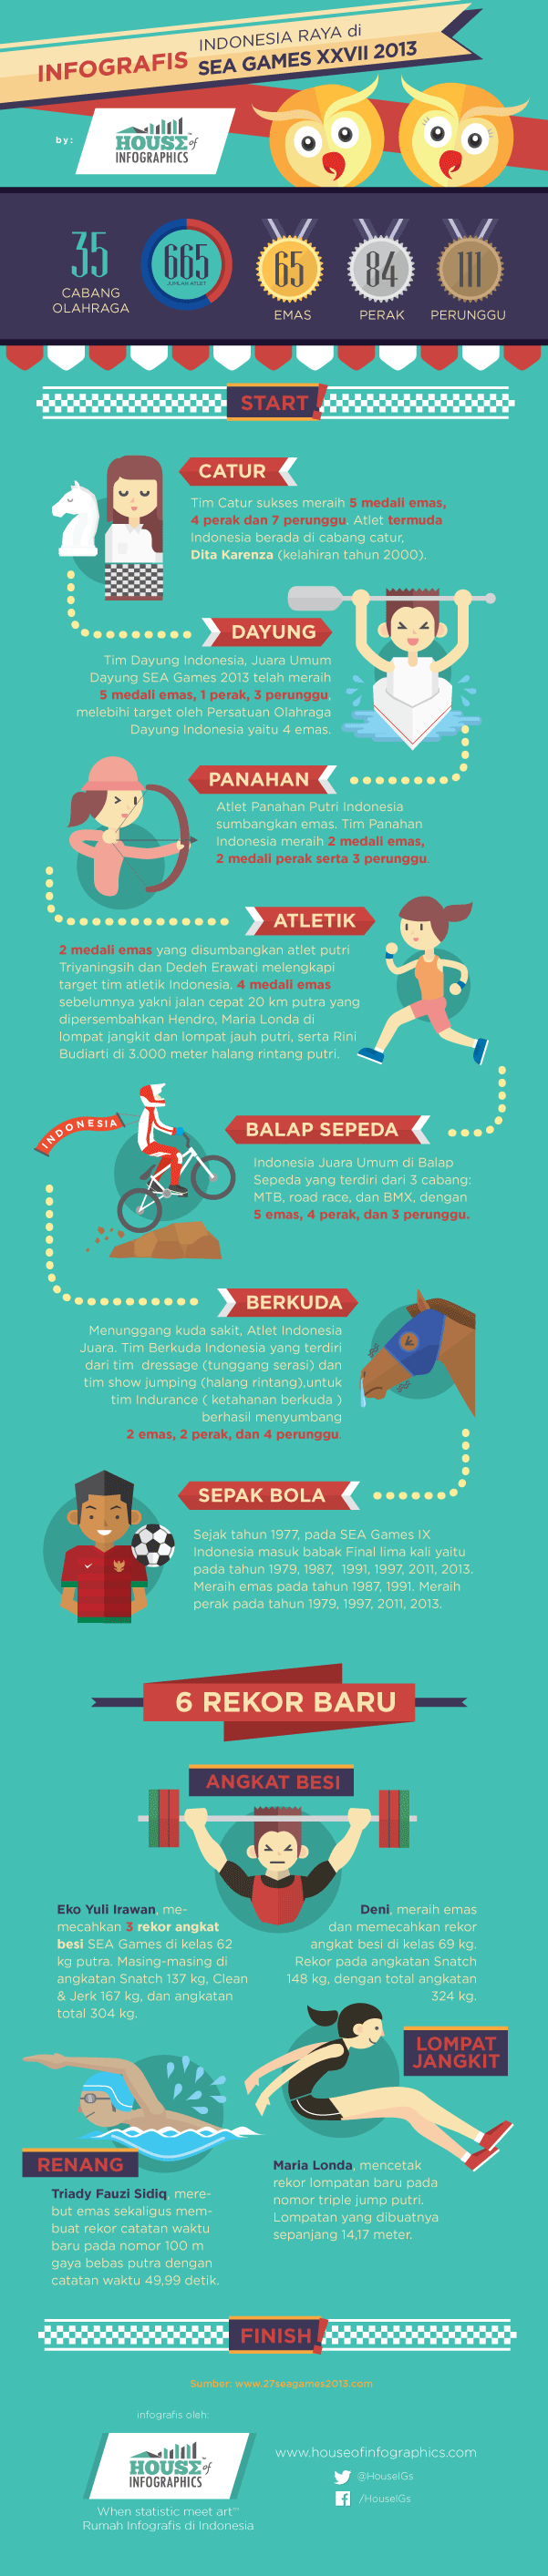 Infografis SEA GAMES 27th